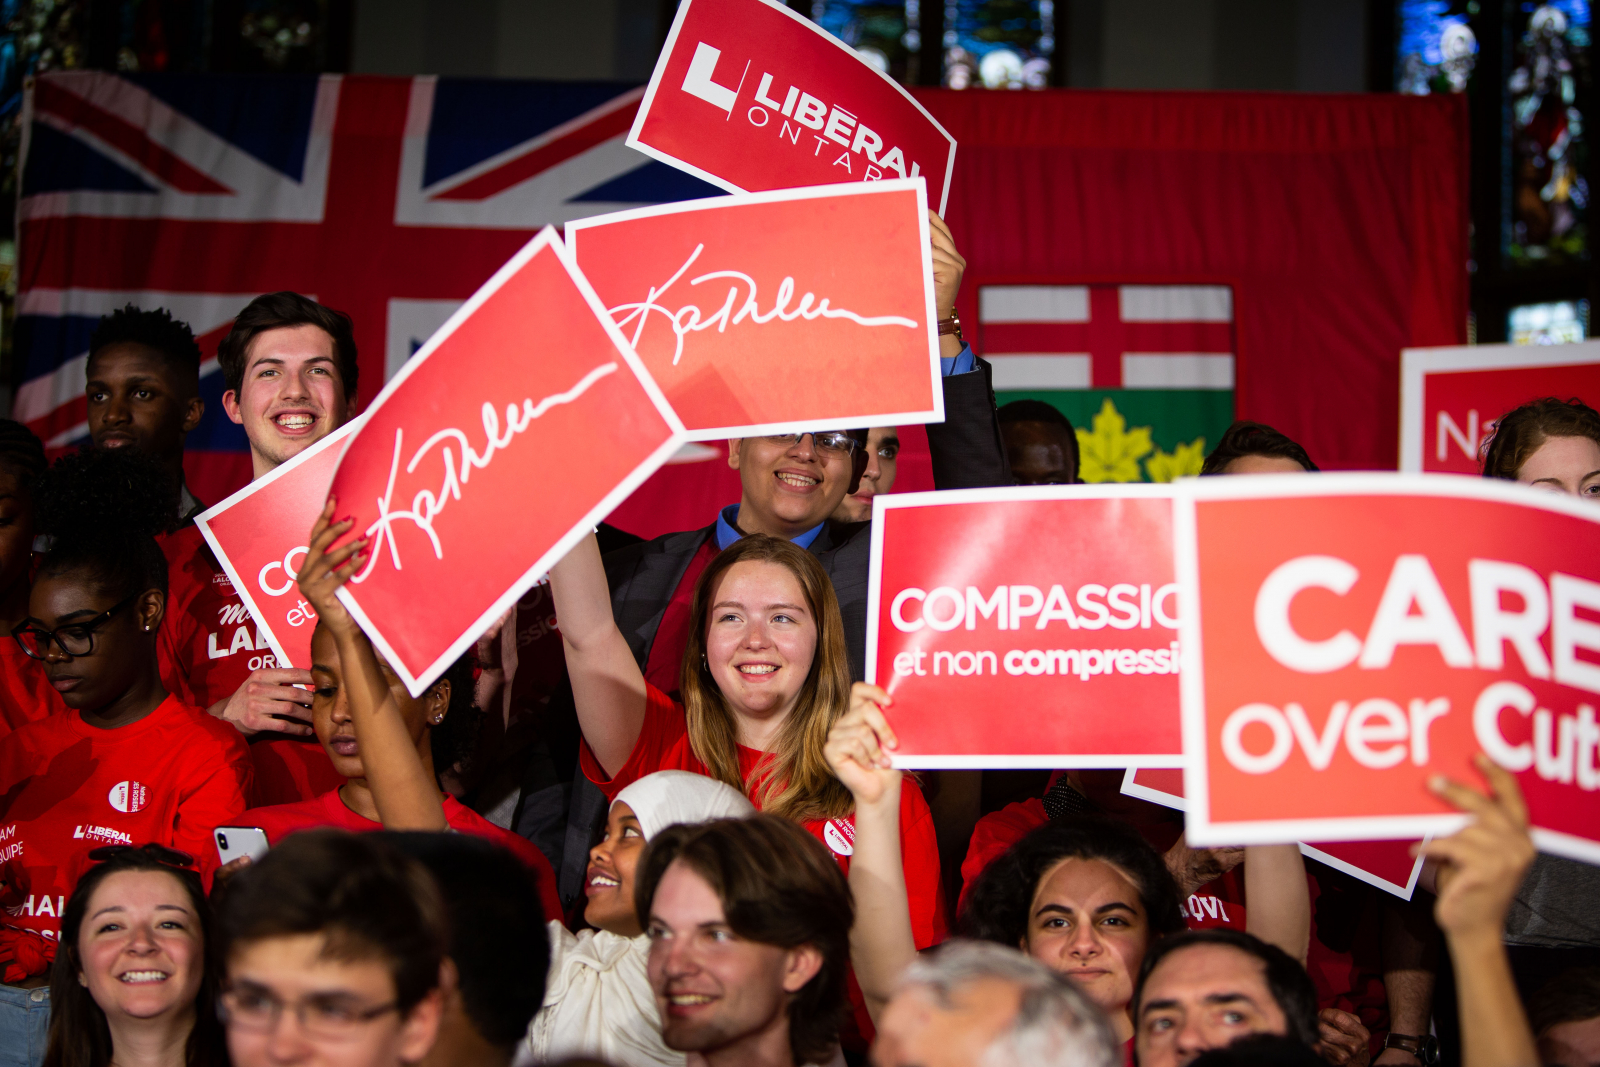 Ontario Liberal supporters hold up campaign signs, including